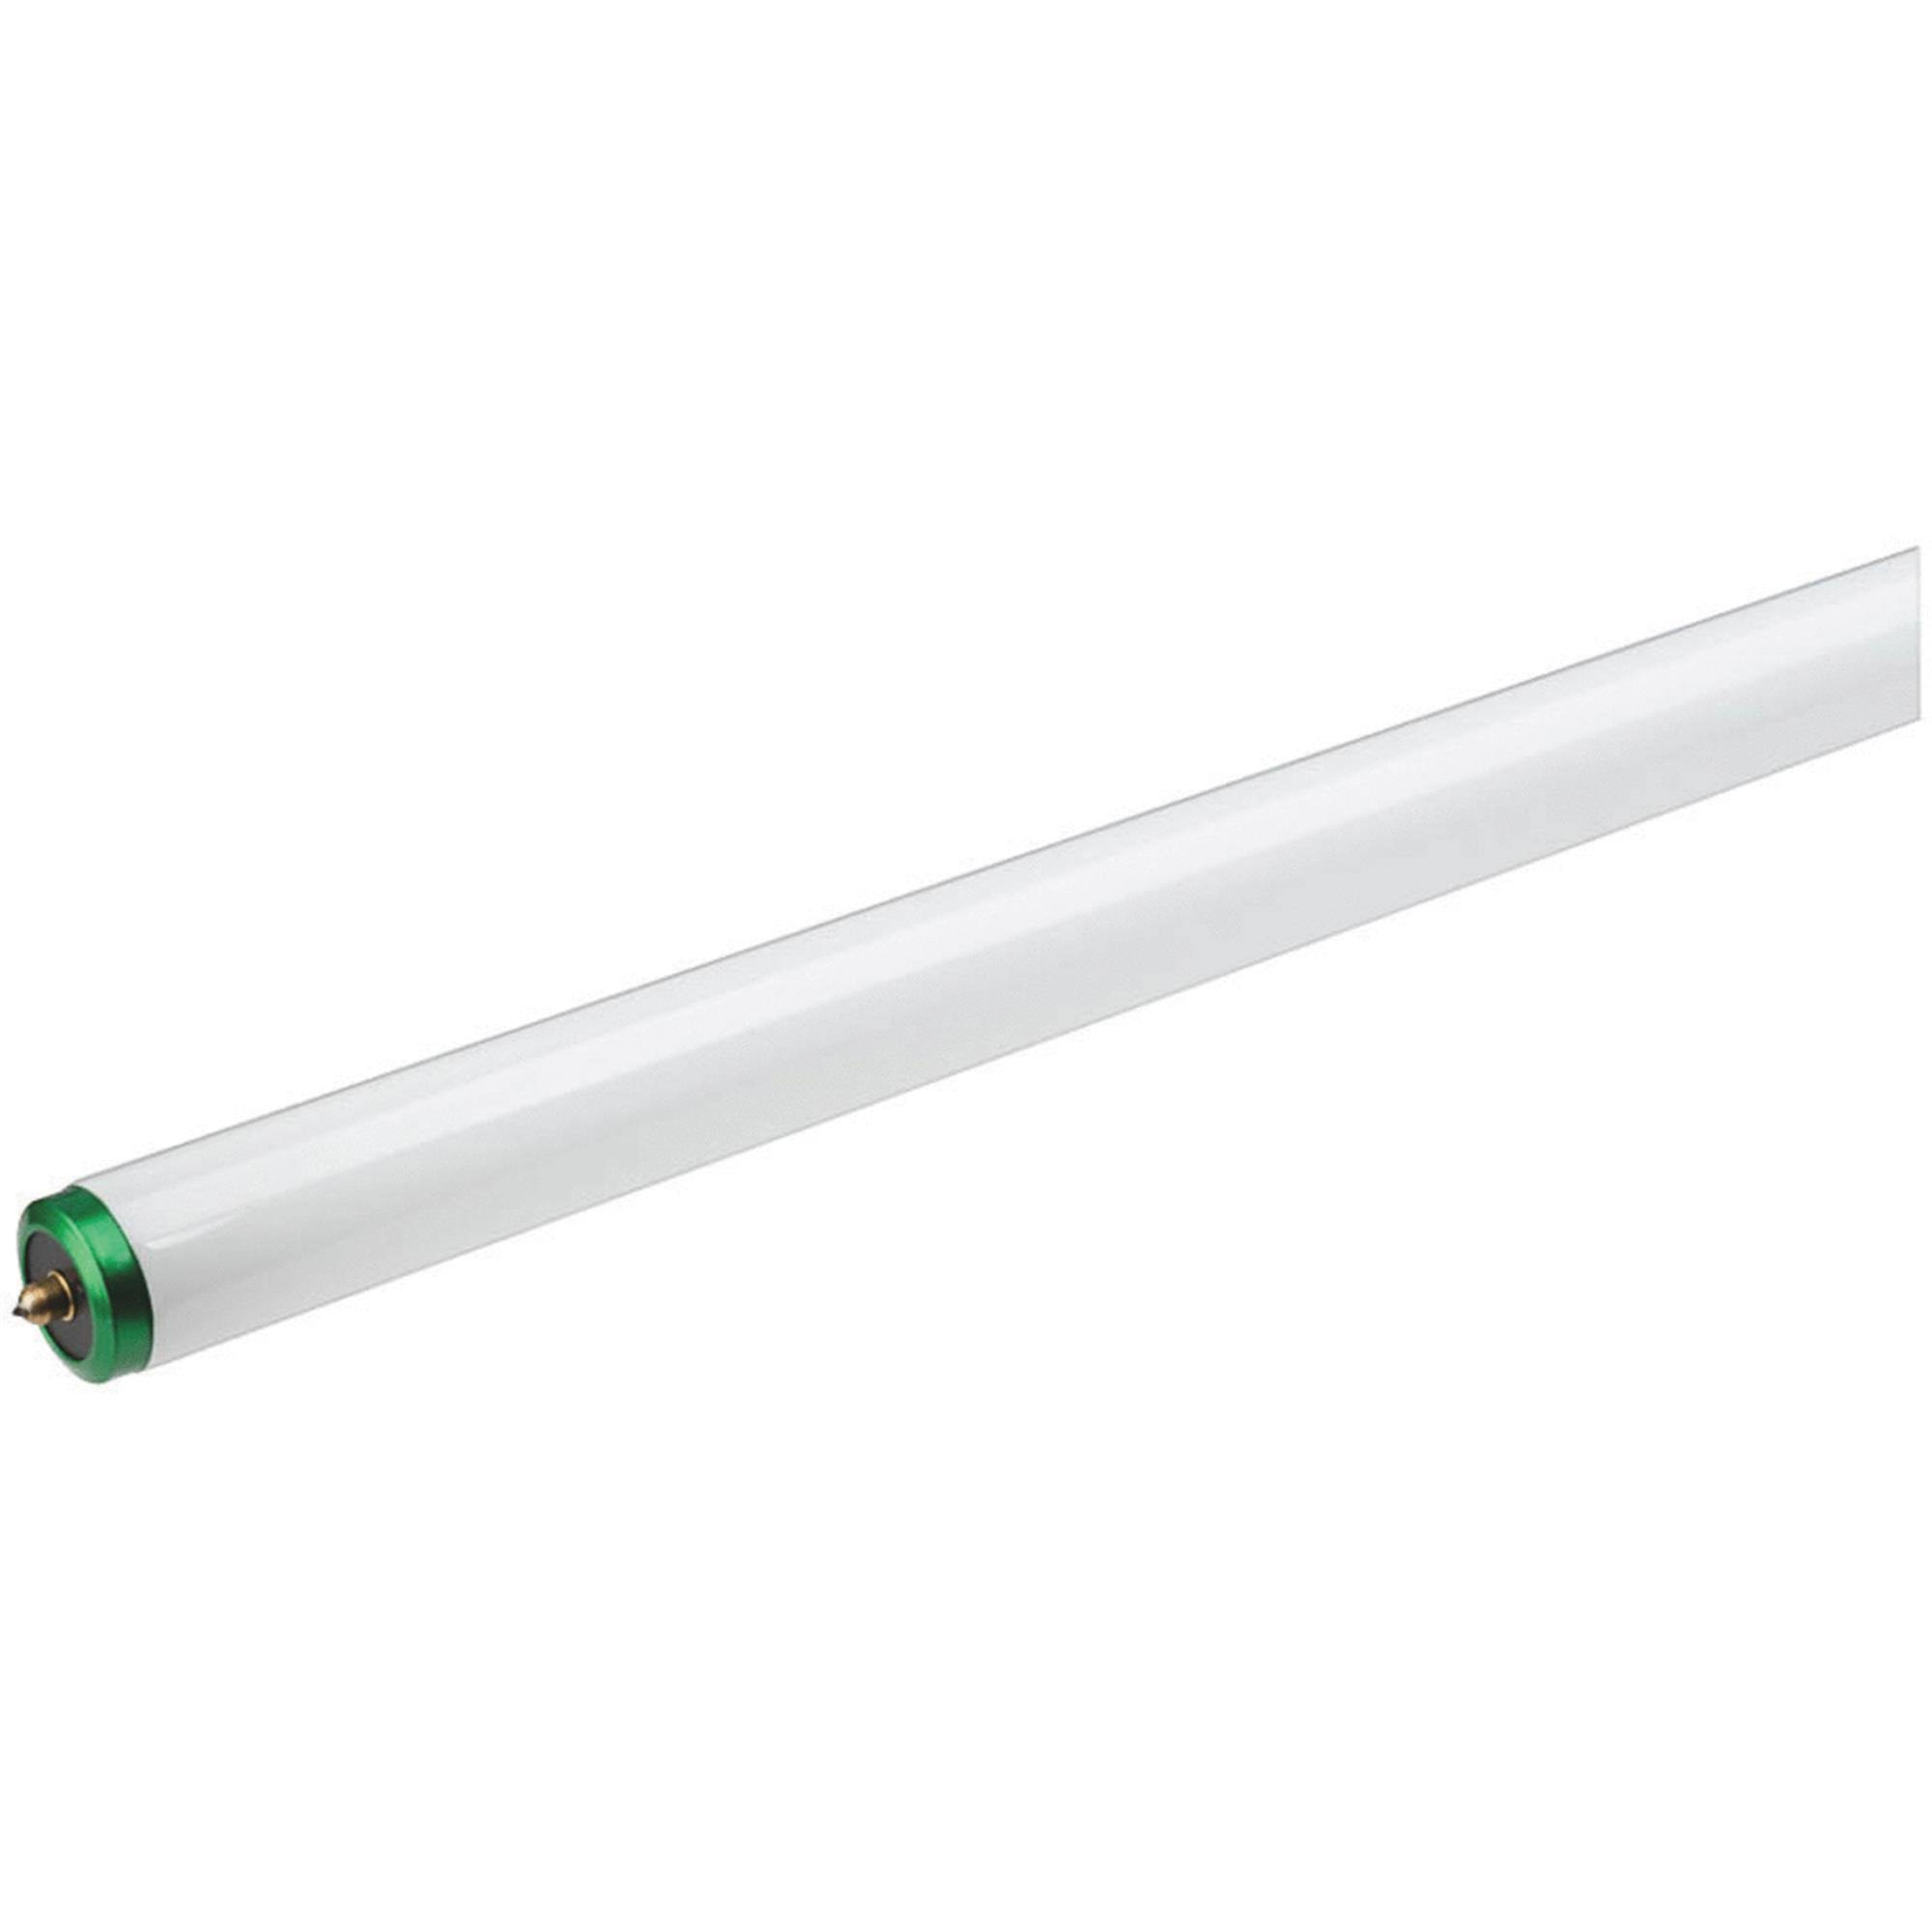 Philips T12 Single Pin Fluorescent Tube Light Bulb